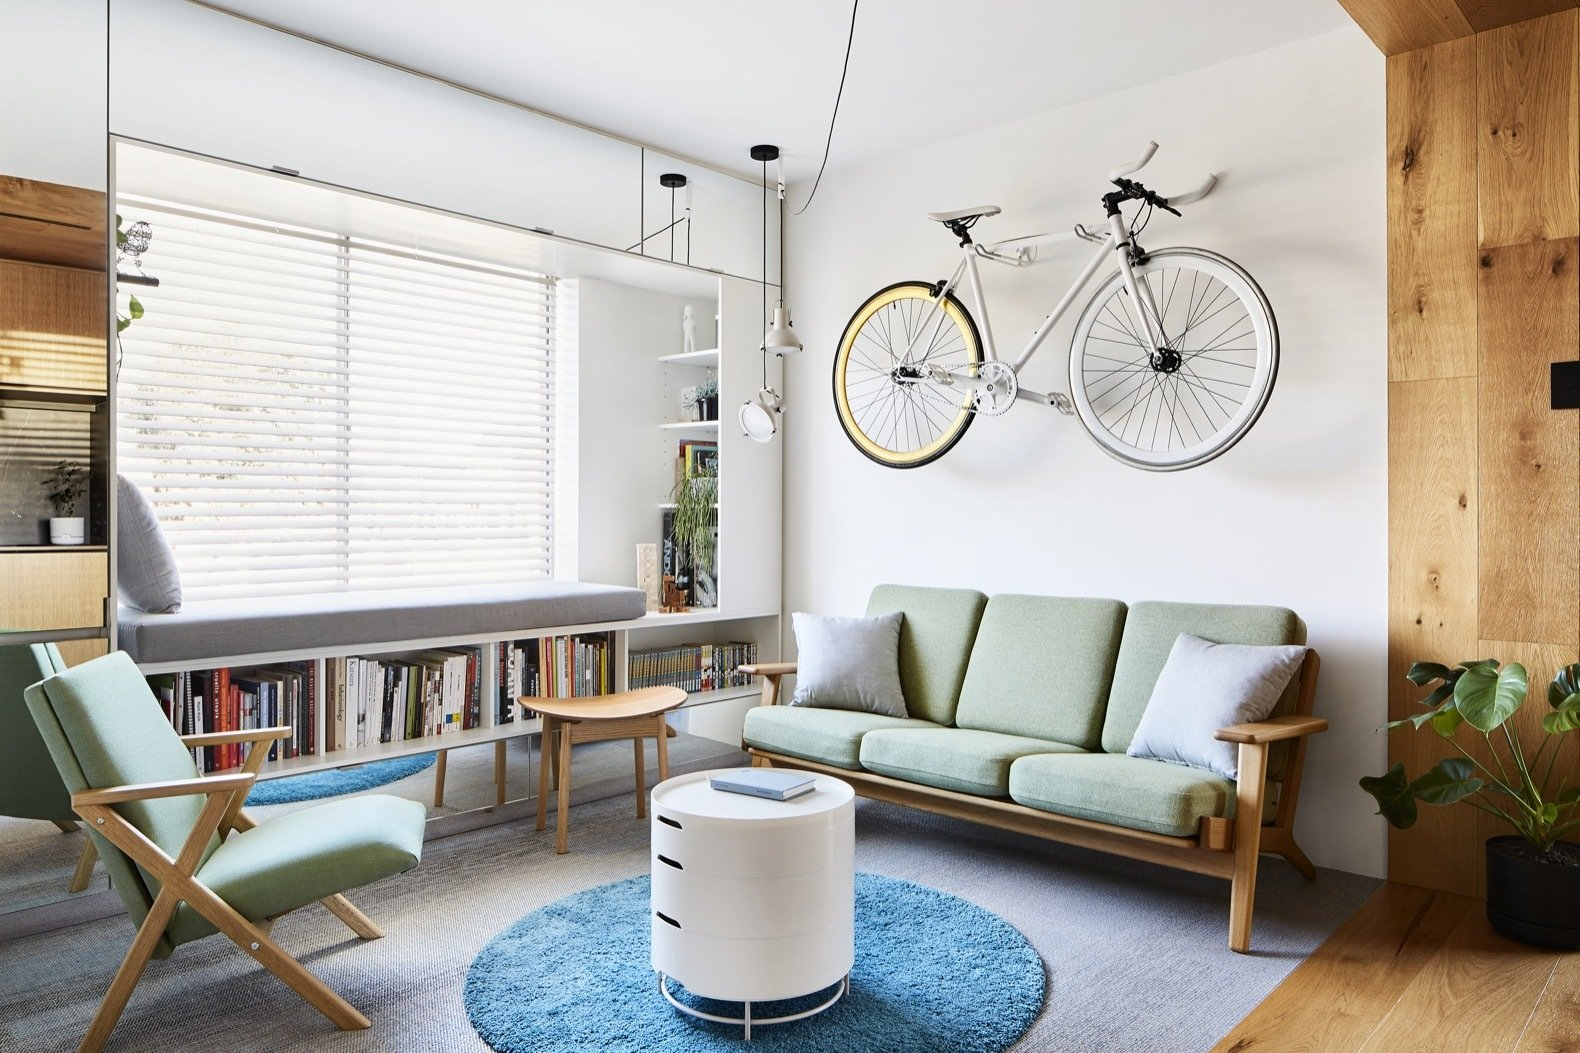 The fixed-gear bicycle hanging above the couch serves as an art piece; Chen no longer rides the bike. Le Corbusier Projecteur 165 pendant lights hang in the corner.